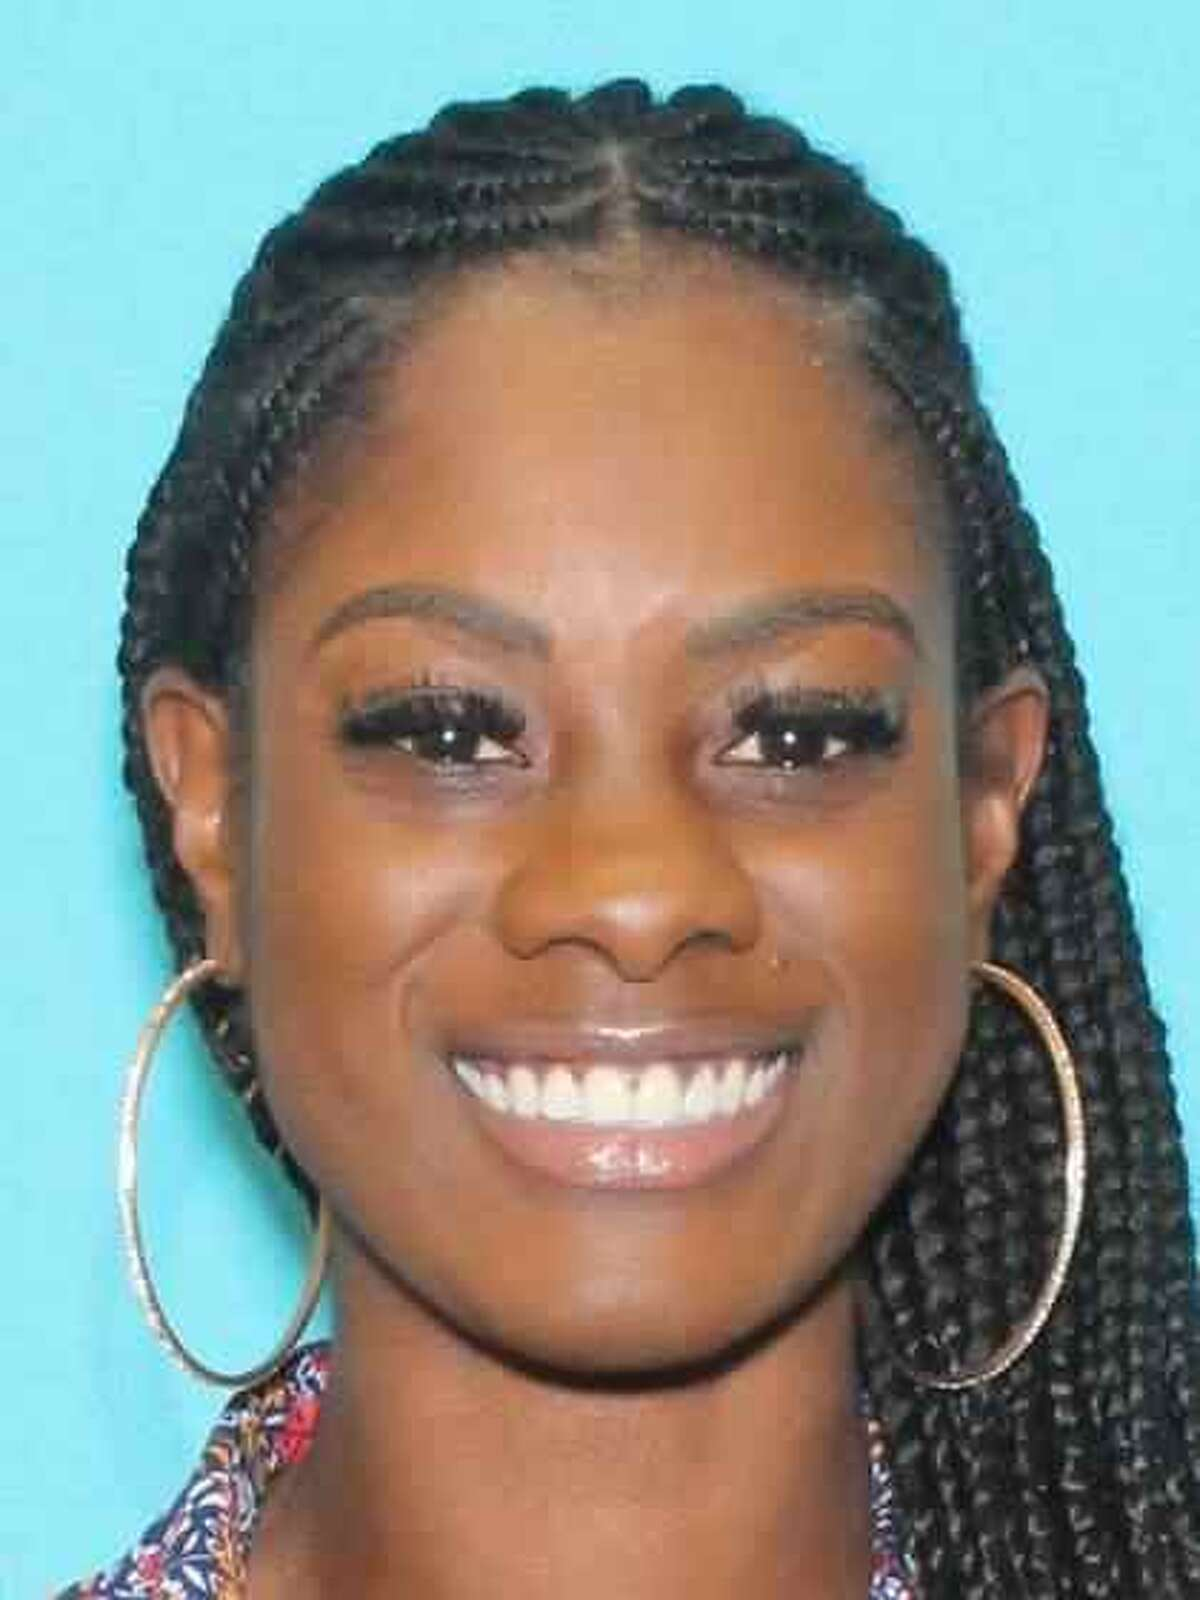 The Bexar County Sheriff's Office is asking anyone with information on the whereabouts of Andreen Nicole Mcdonald, 29, to contact them at 210-335-6000. Mcdonald never showed up for work Friday, according to BCSO.